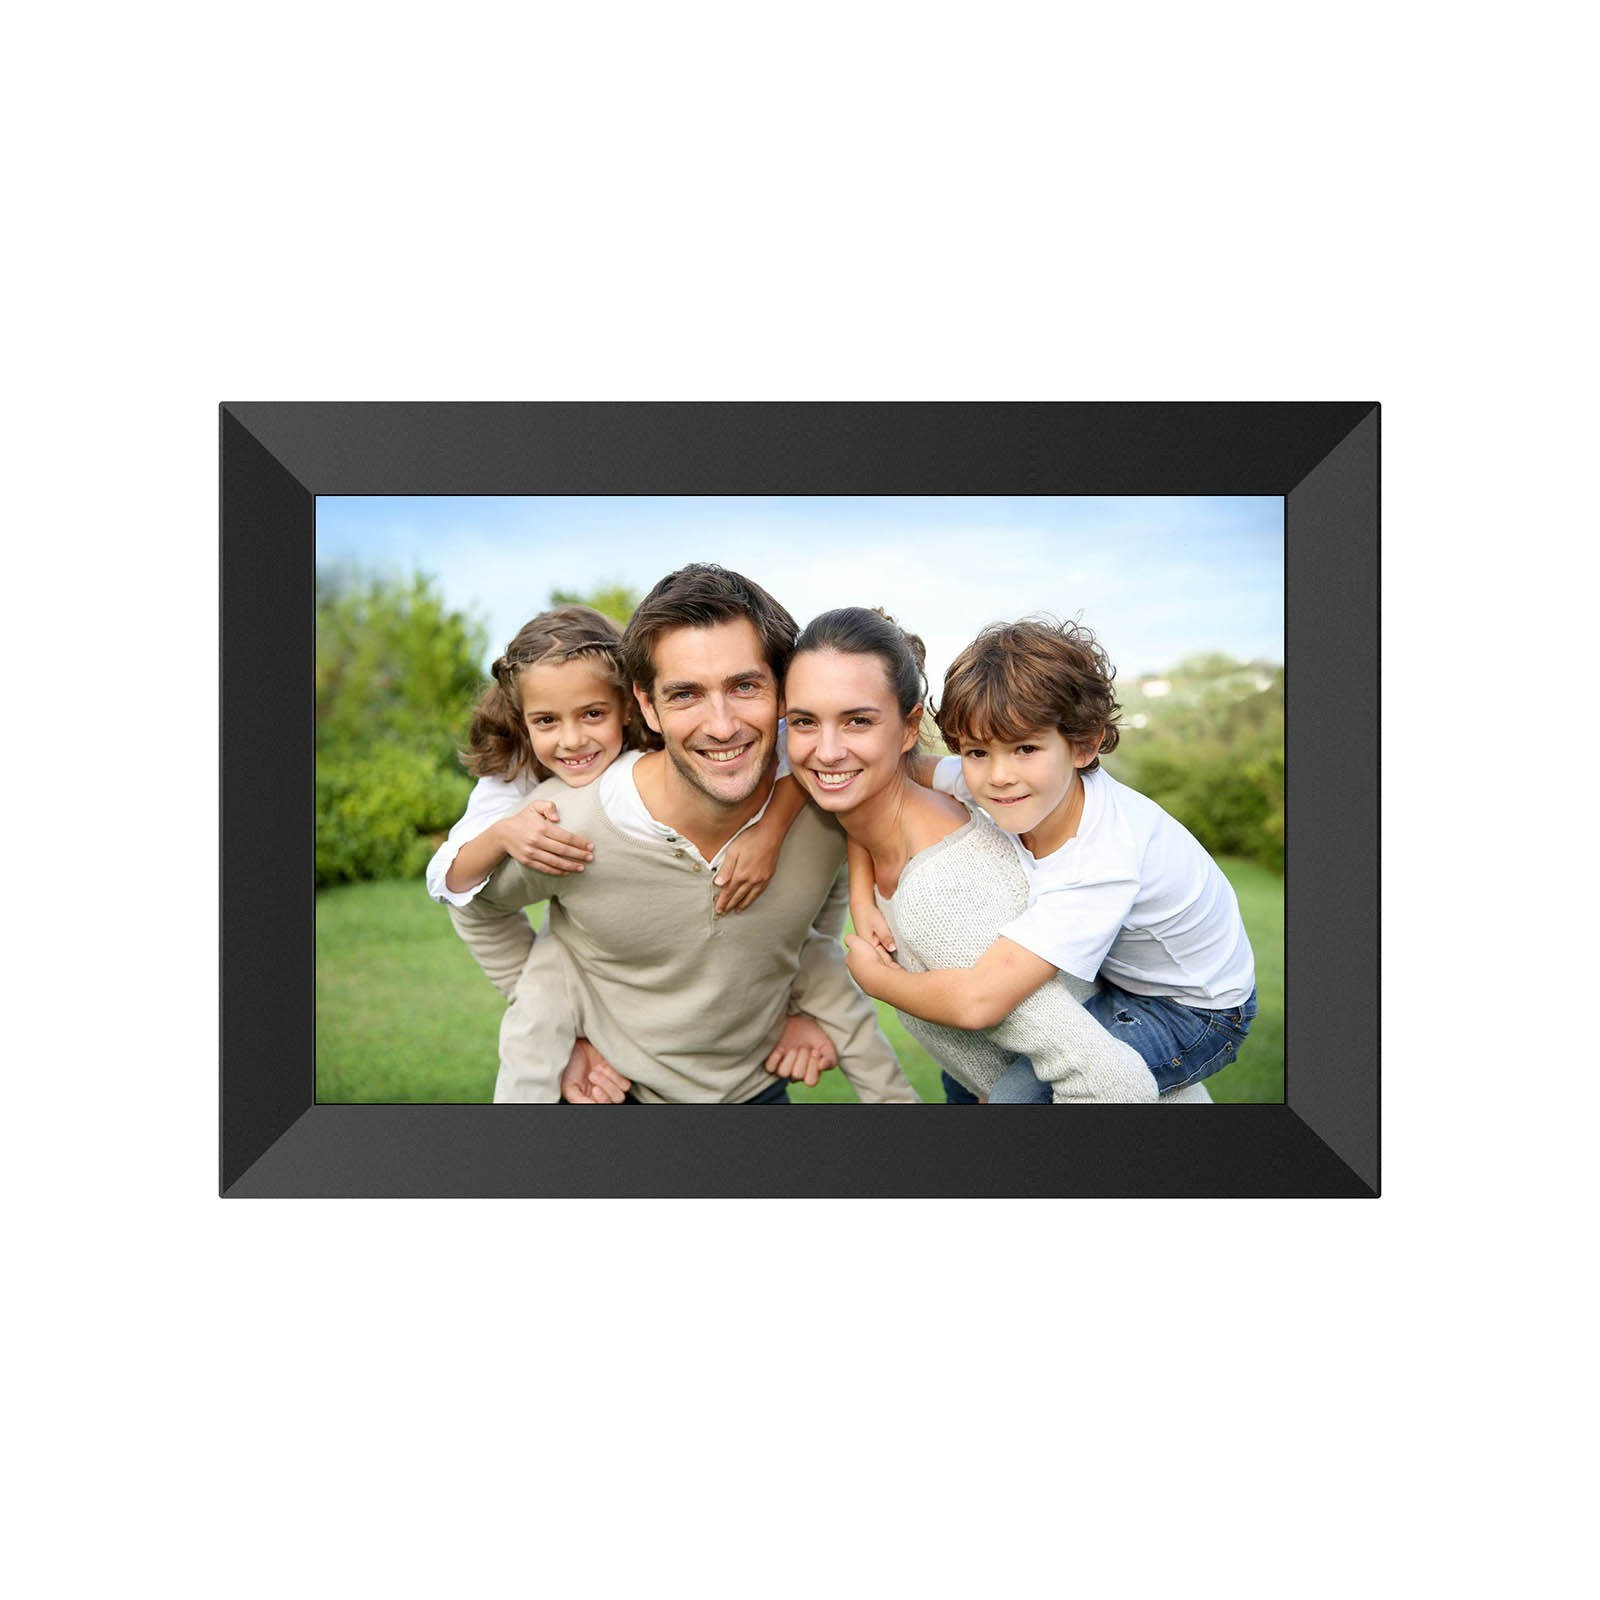 tomtop.com - 37% OFF A10 10.1 Inch Frameo WiFi Digital Photo Frame, Limited Offers $81.99